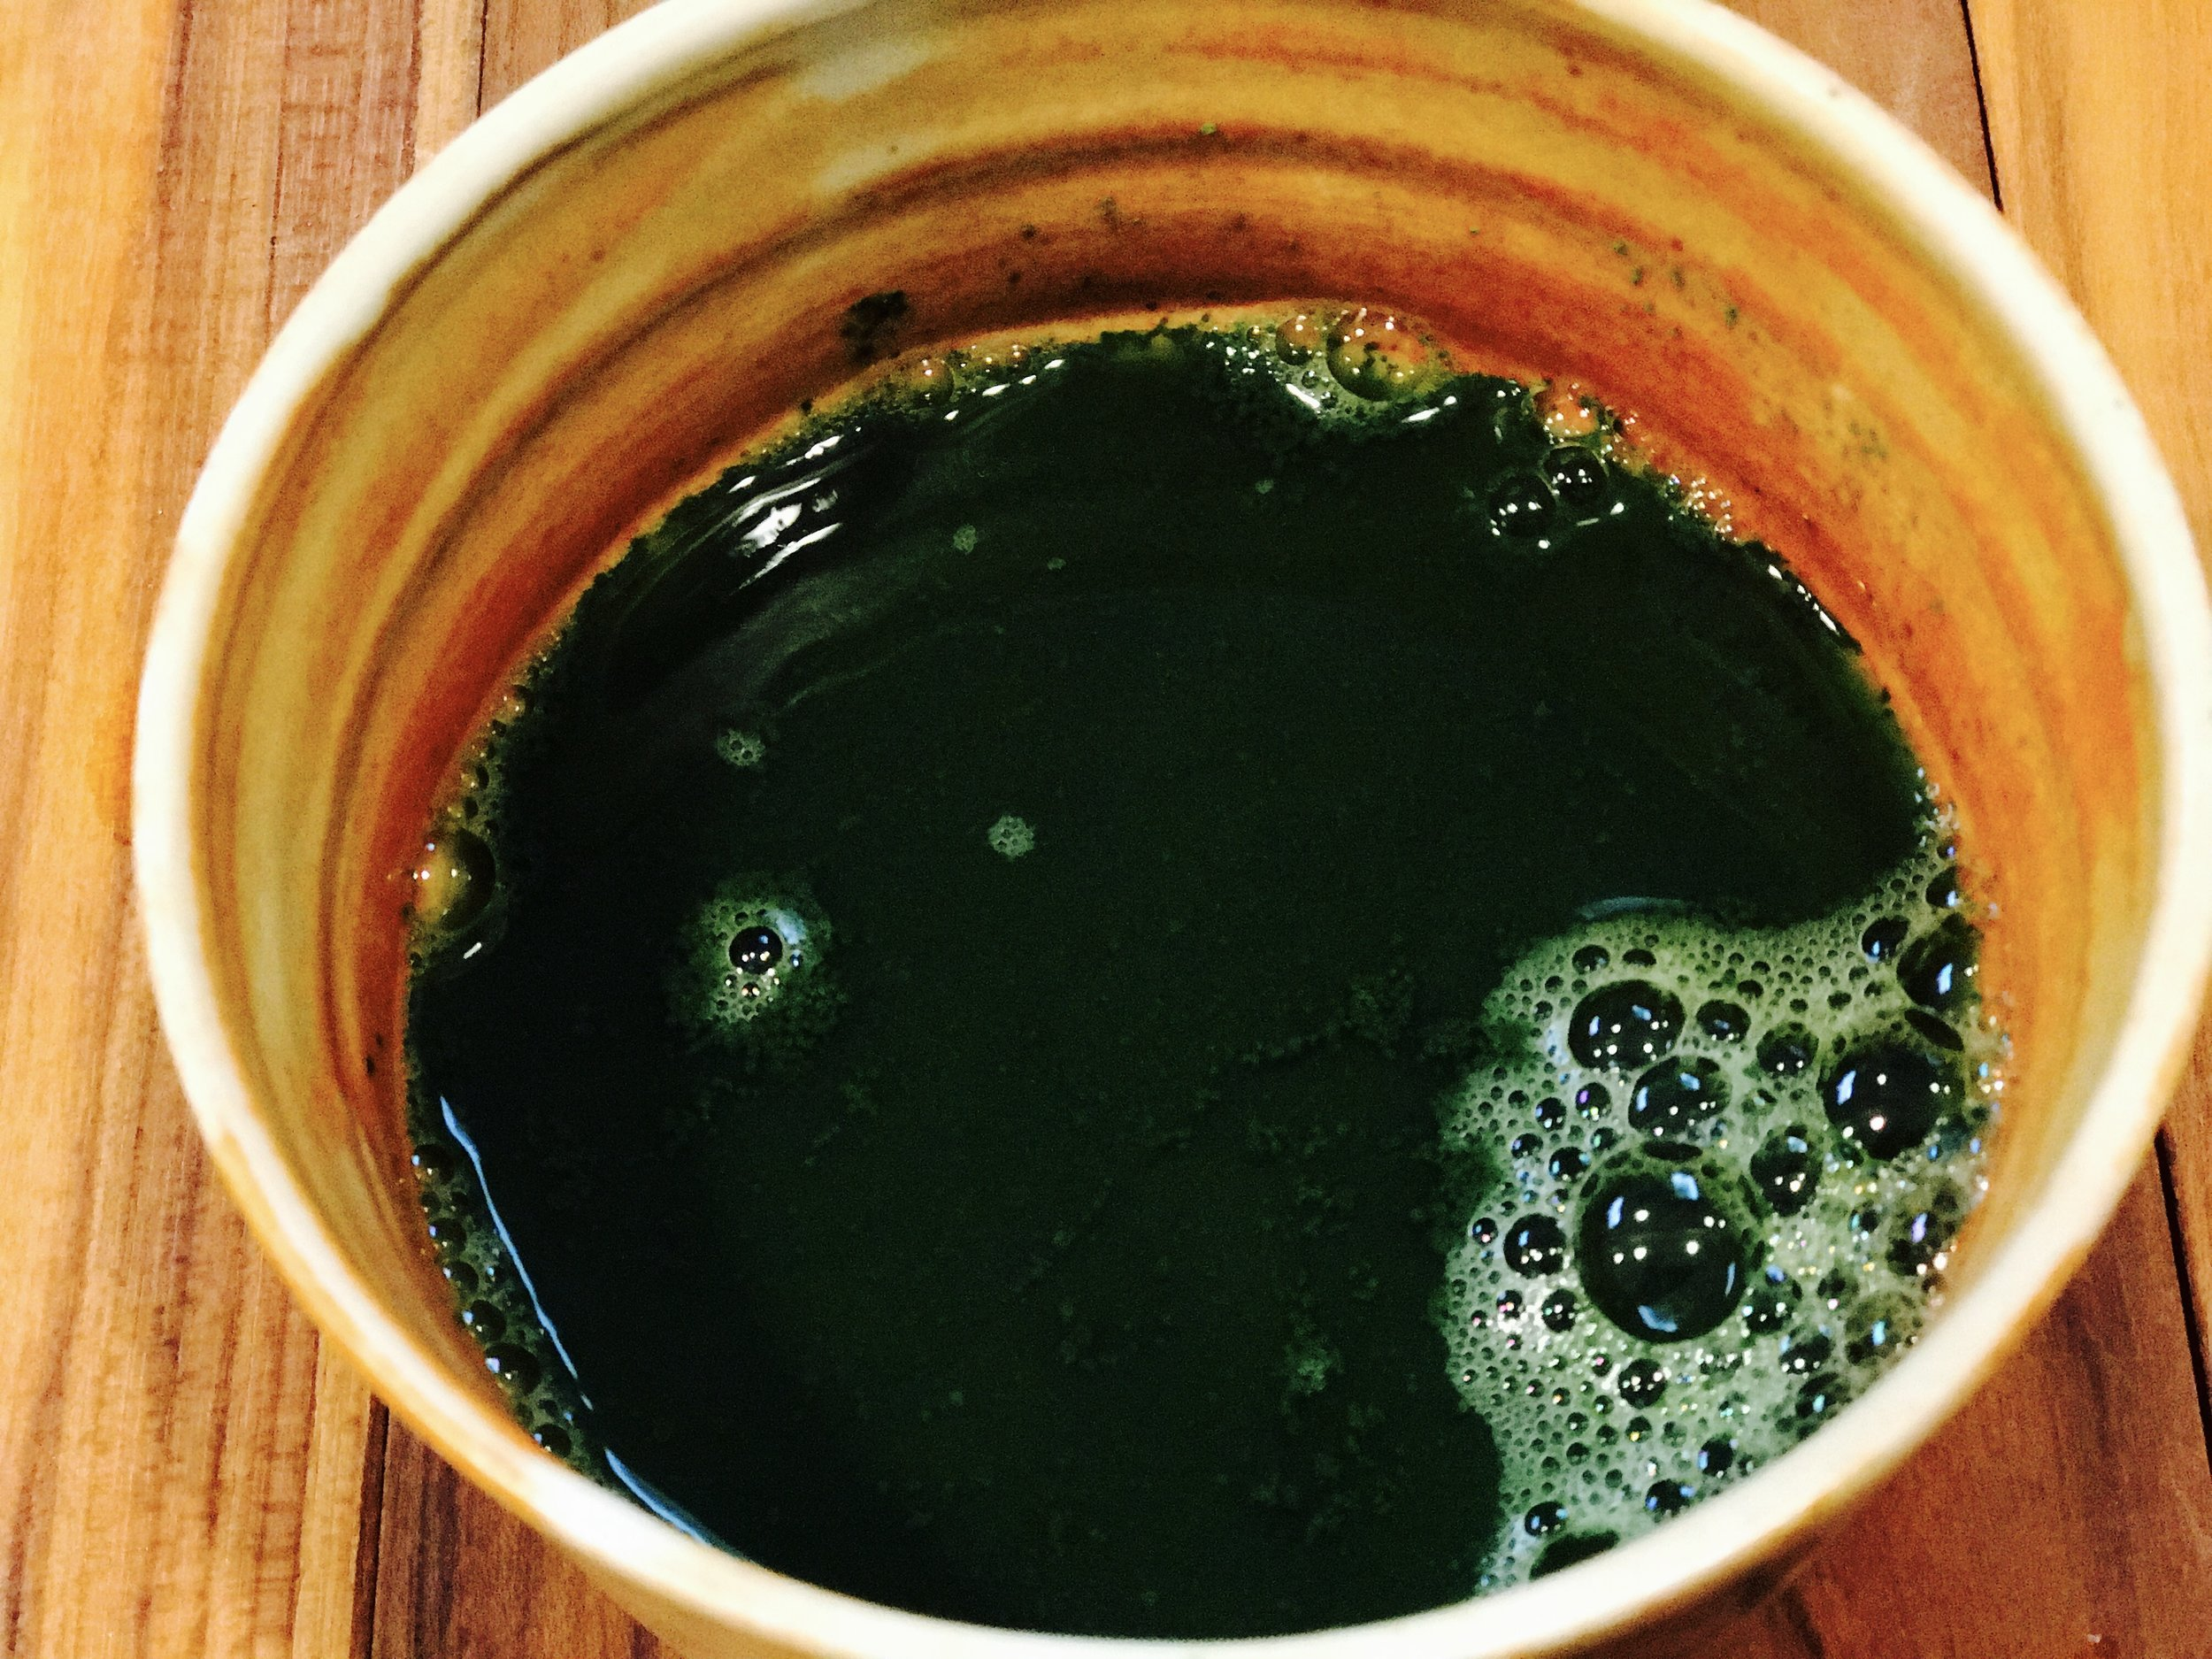 1.5 oz of water covering matcha